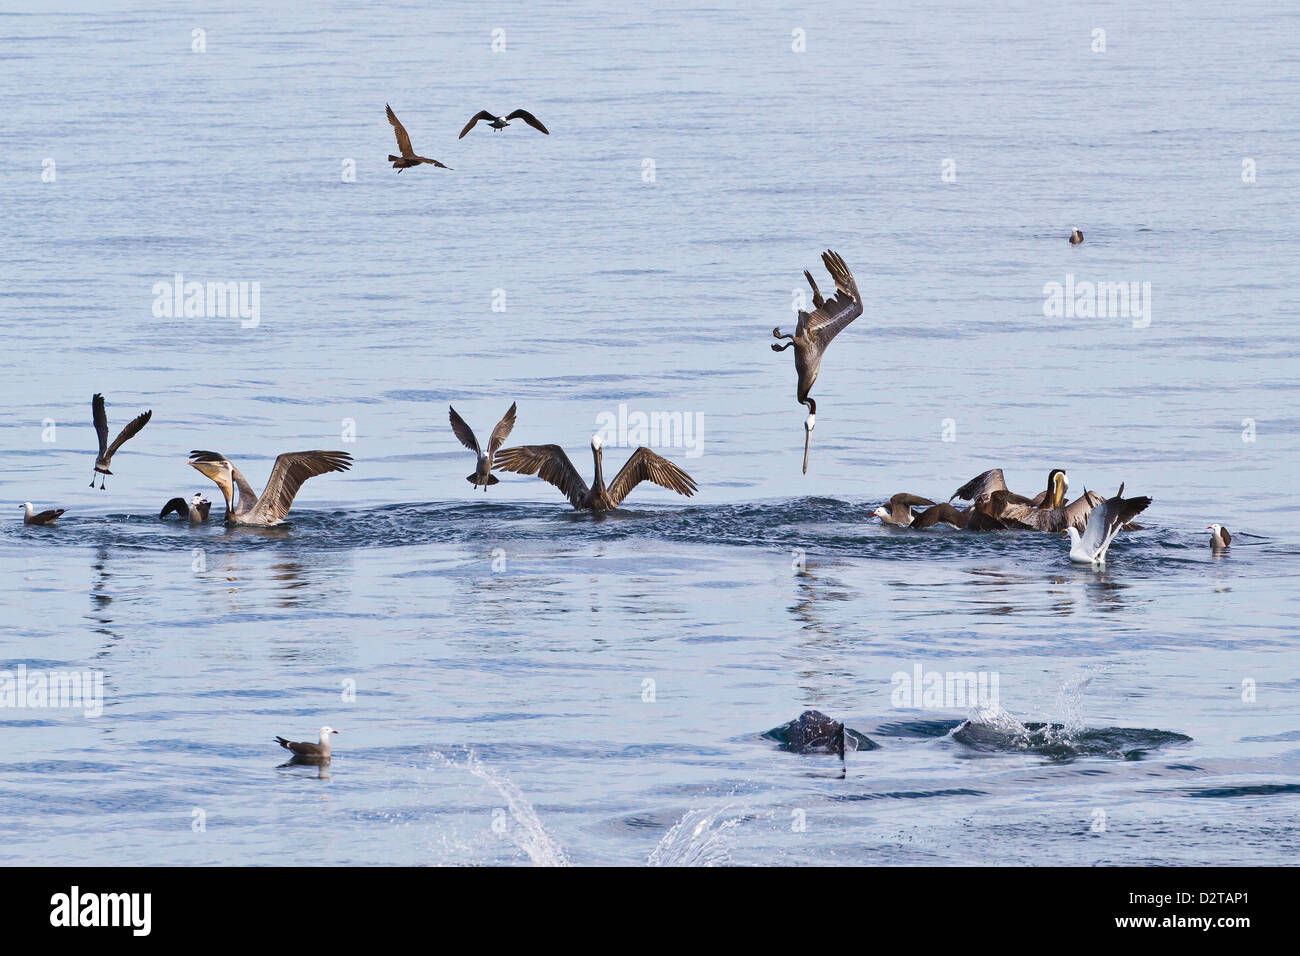 Brown pelicans (Pelecanus occidentalis) plunge-diving, Gulf of California (Sea of Cortez), Baja California, Mexico - Stock Image